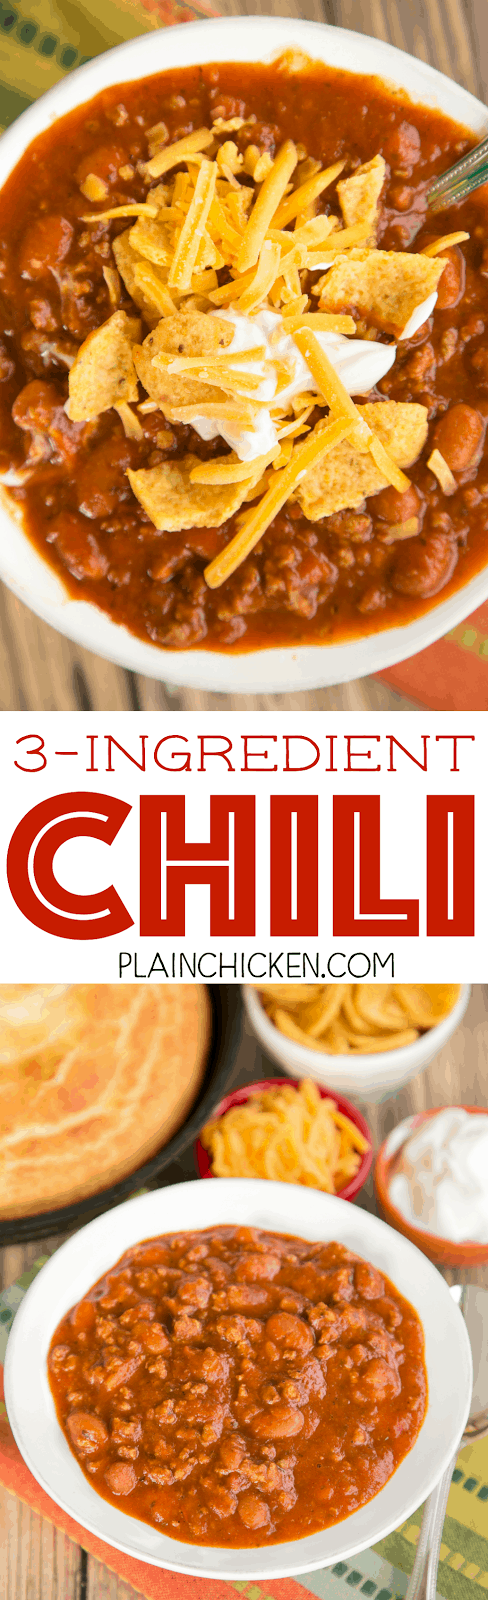 3-Ingredient Chili - ready in 15 minutes! SO easy and everyone loves it! Even picky kids gobble this up! Top chili with your favorite fixings or serve on top of french fries. Seriously delicious. A new family favorite!